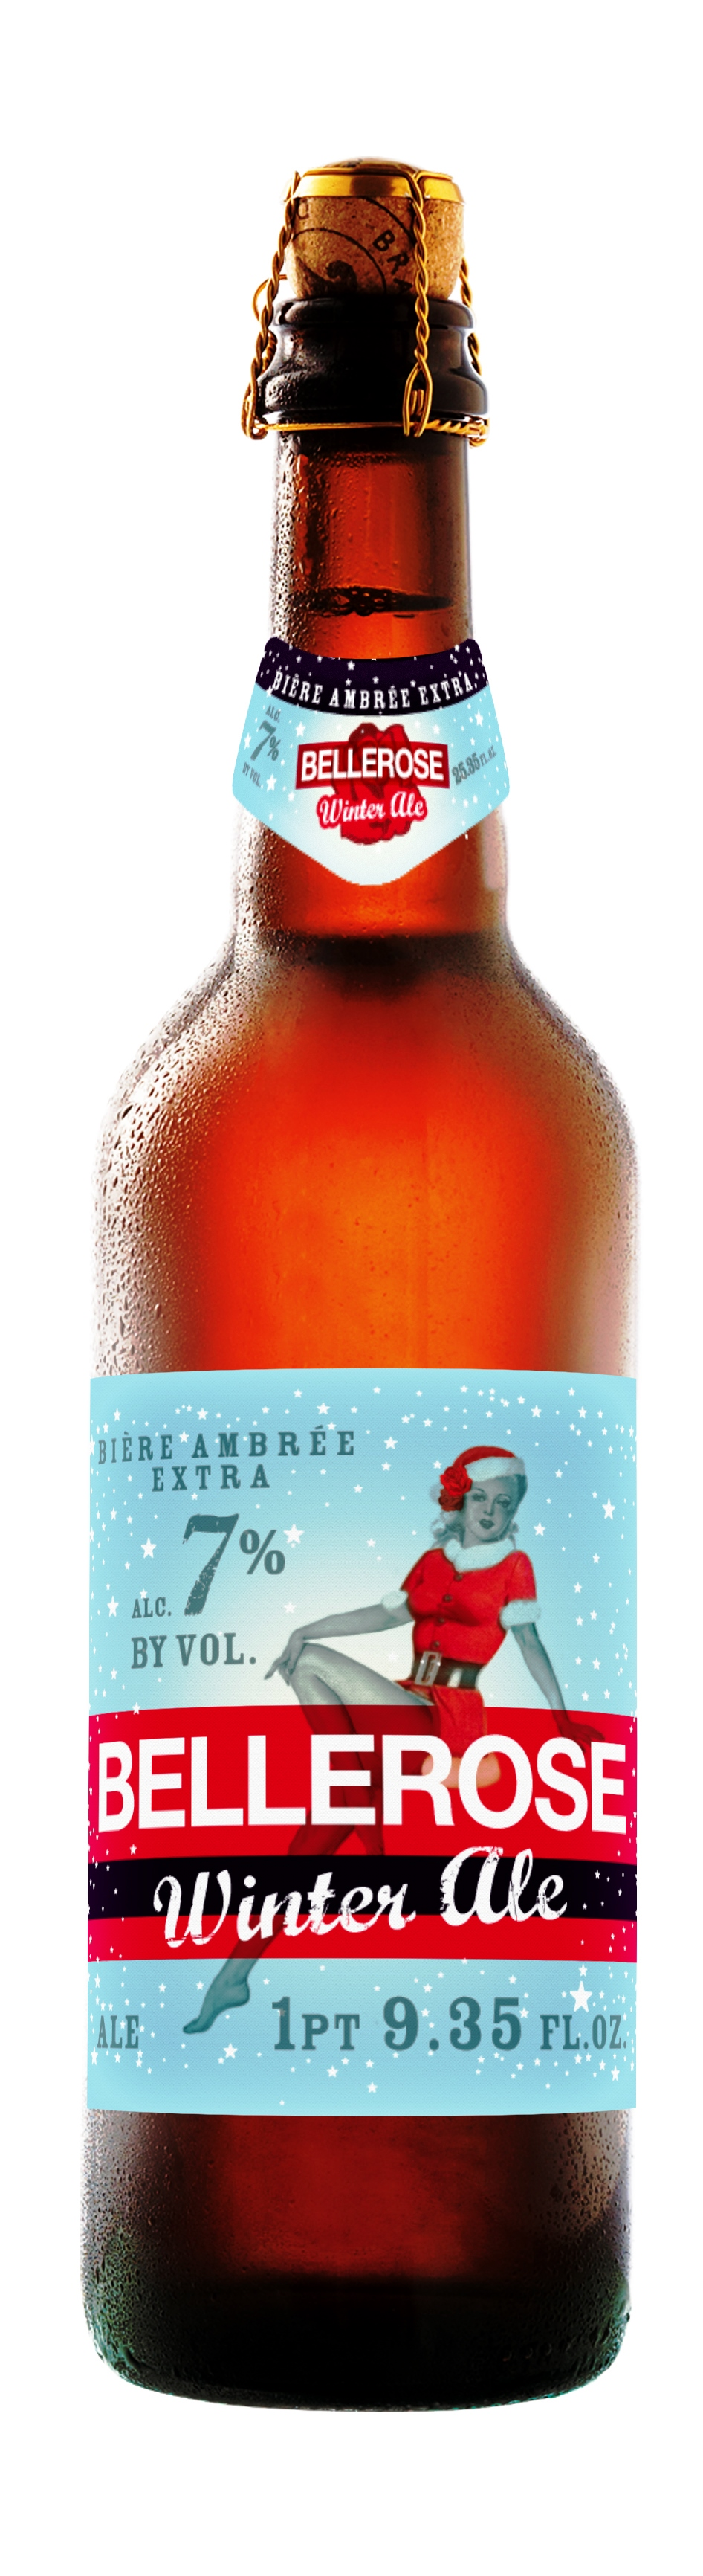 Bellerose Winter Ale imported by Iron Horse Beverage LLC - Melville, New York